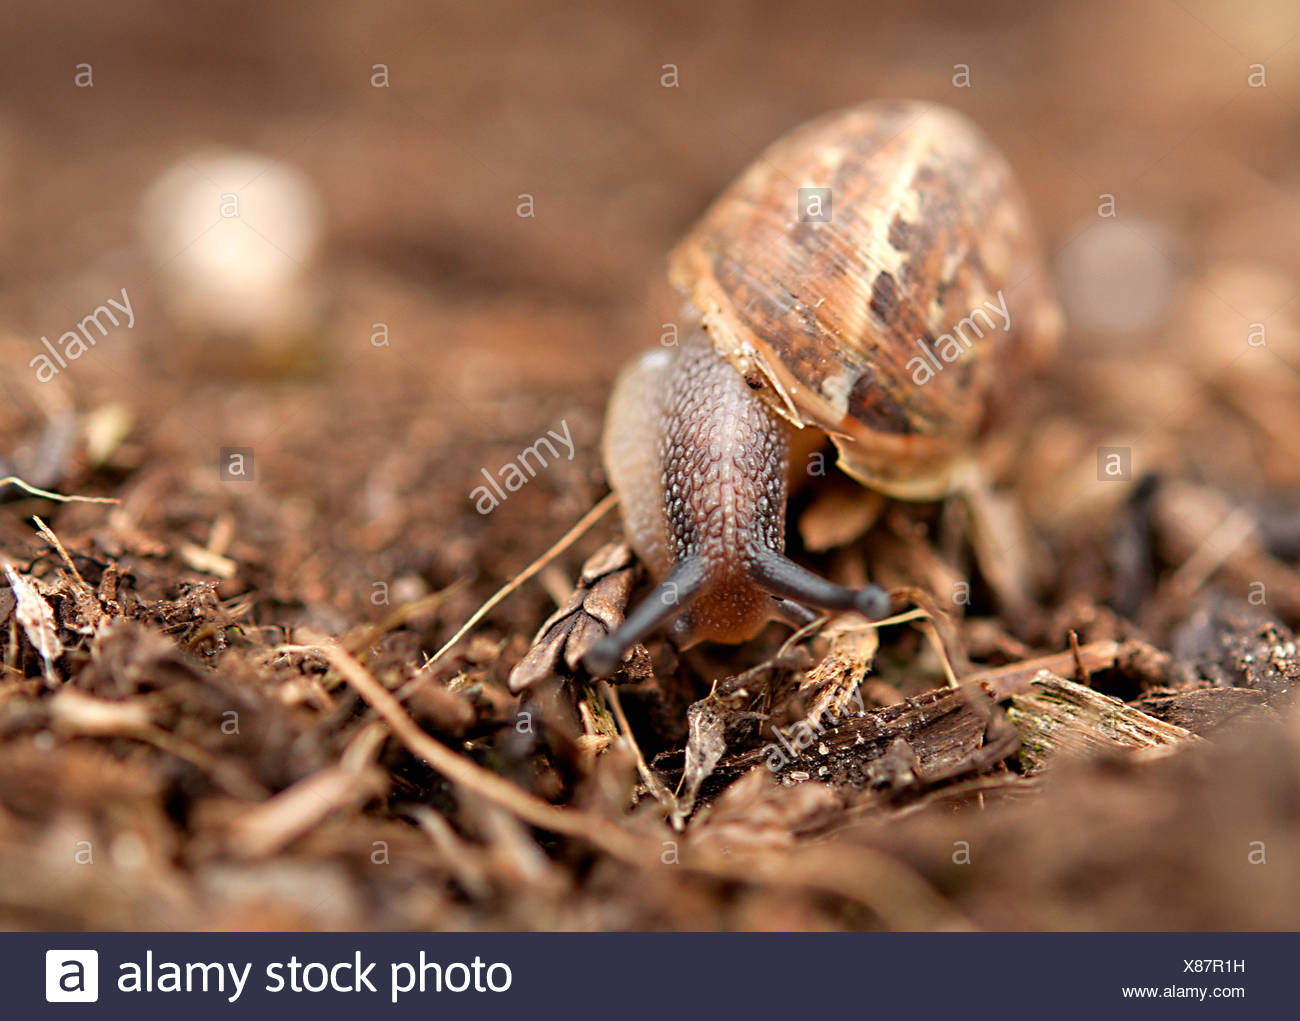 Close-up of a snail - Stock Image